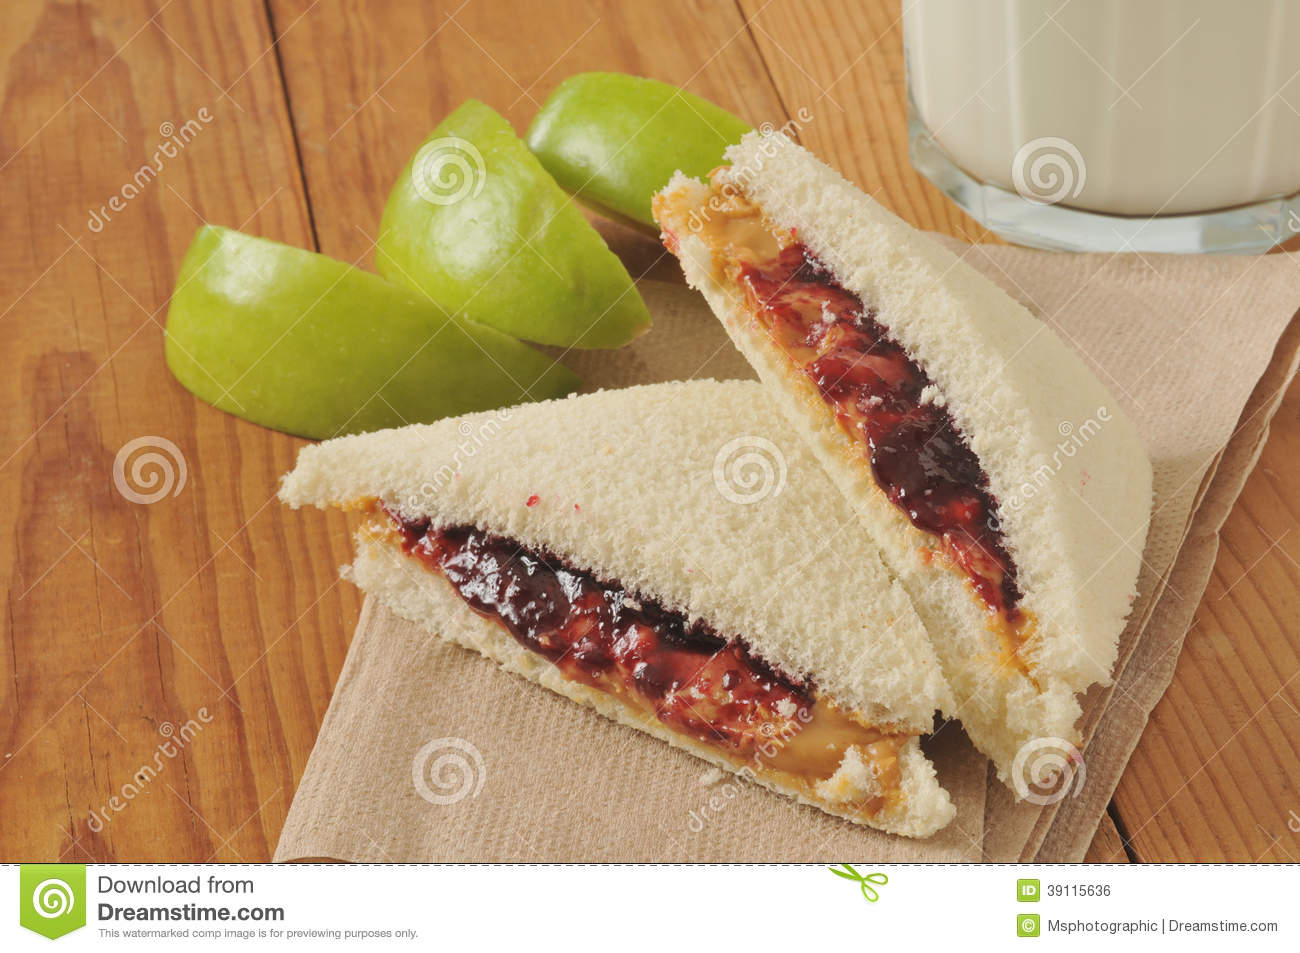 Jack off with peanut butter sandwich